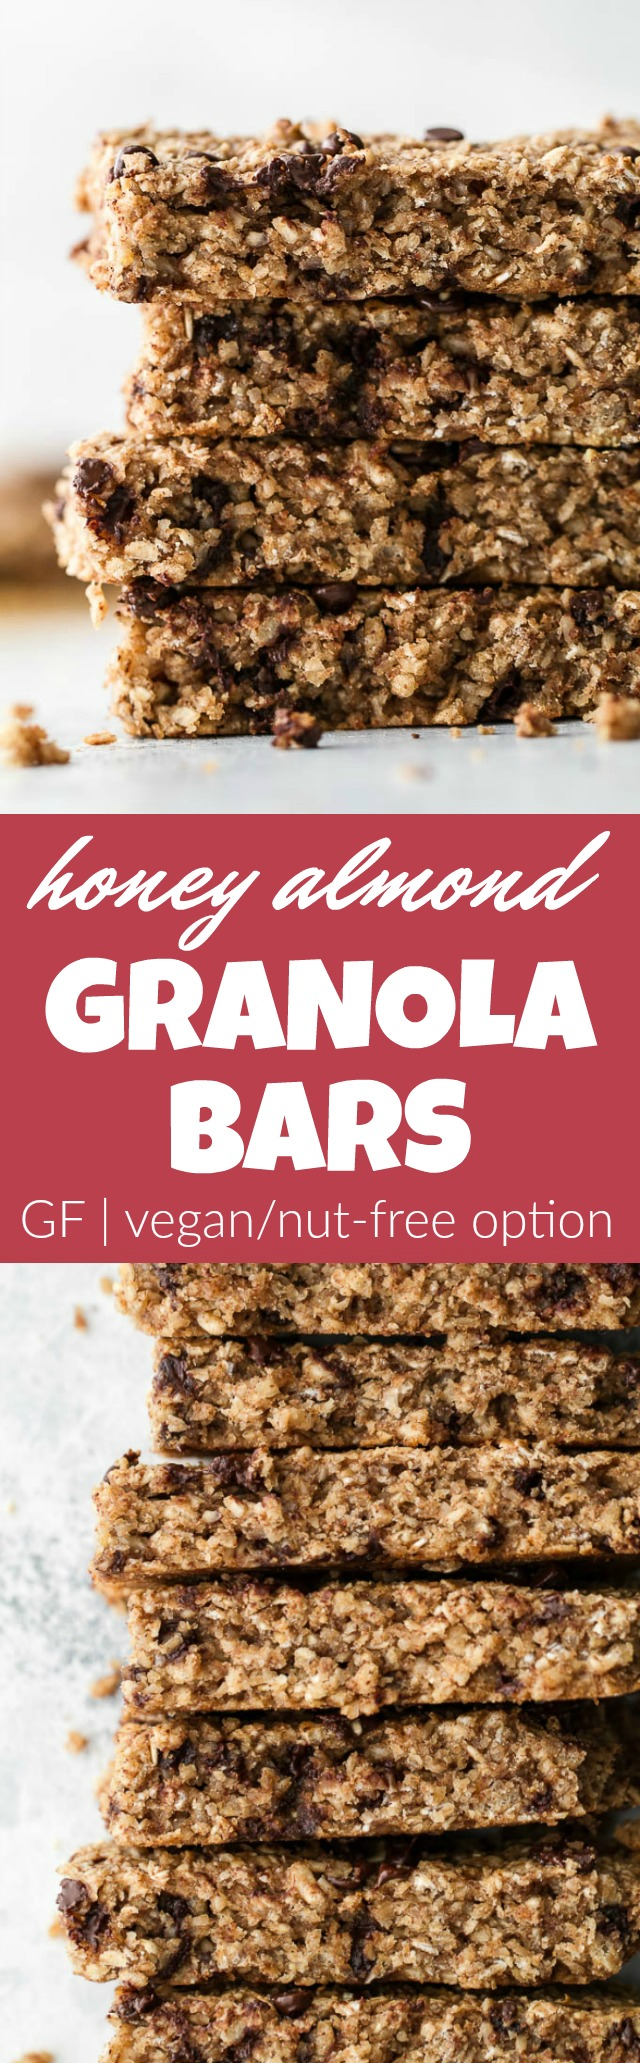 So much better than store-bought! These honey almond granola bars are made without any refined sugars or oils, with just the perfect touch of honey and almond flavour! They're gluten-free, vegan, and easily made nut-free if you need them to be. The perfect easy and healthy snack! | runningwithspoons.com